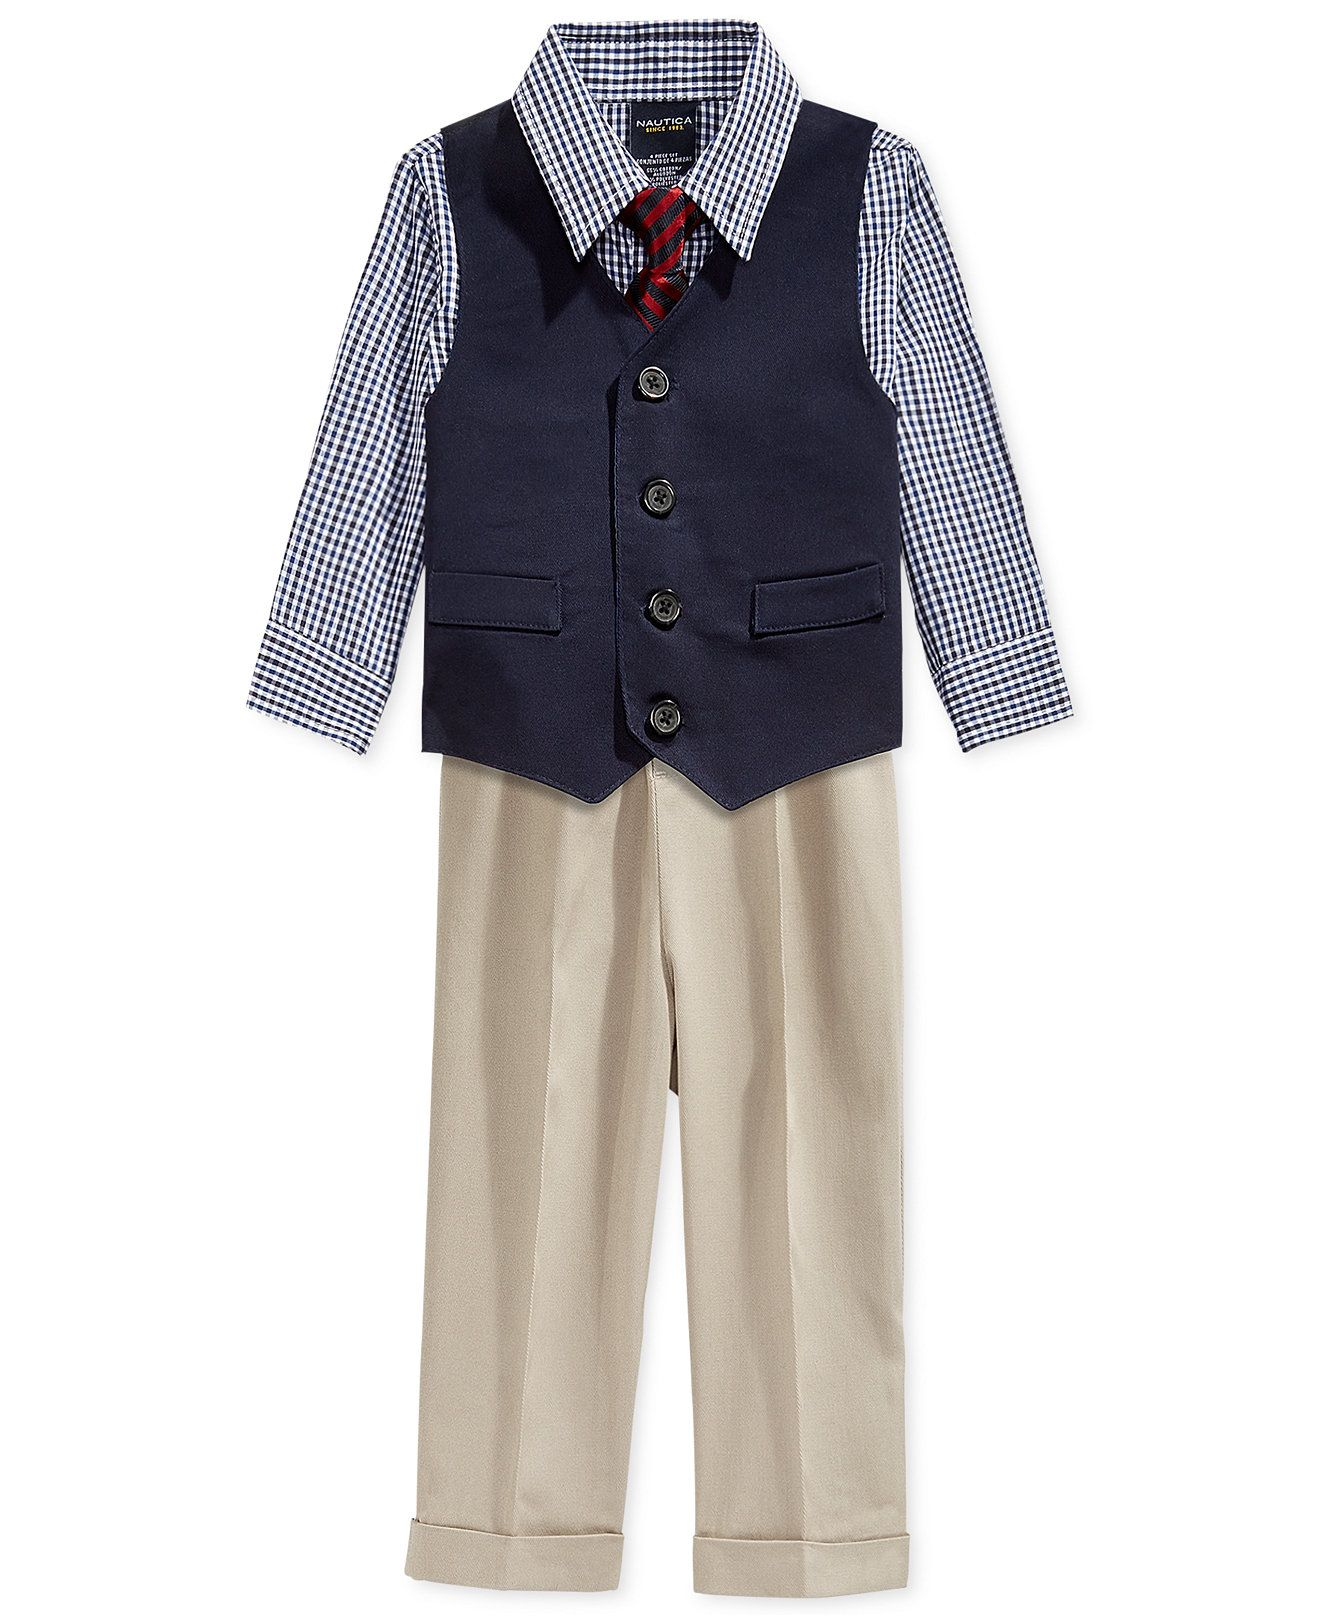 Nautica 4 Piece Vested Twill Suit Set Baby Boys